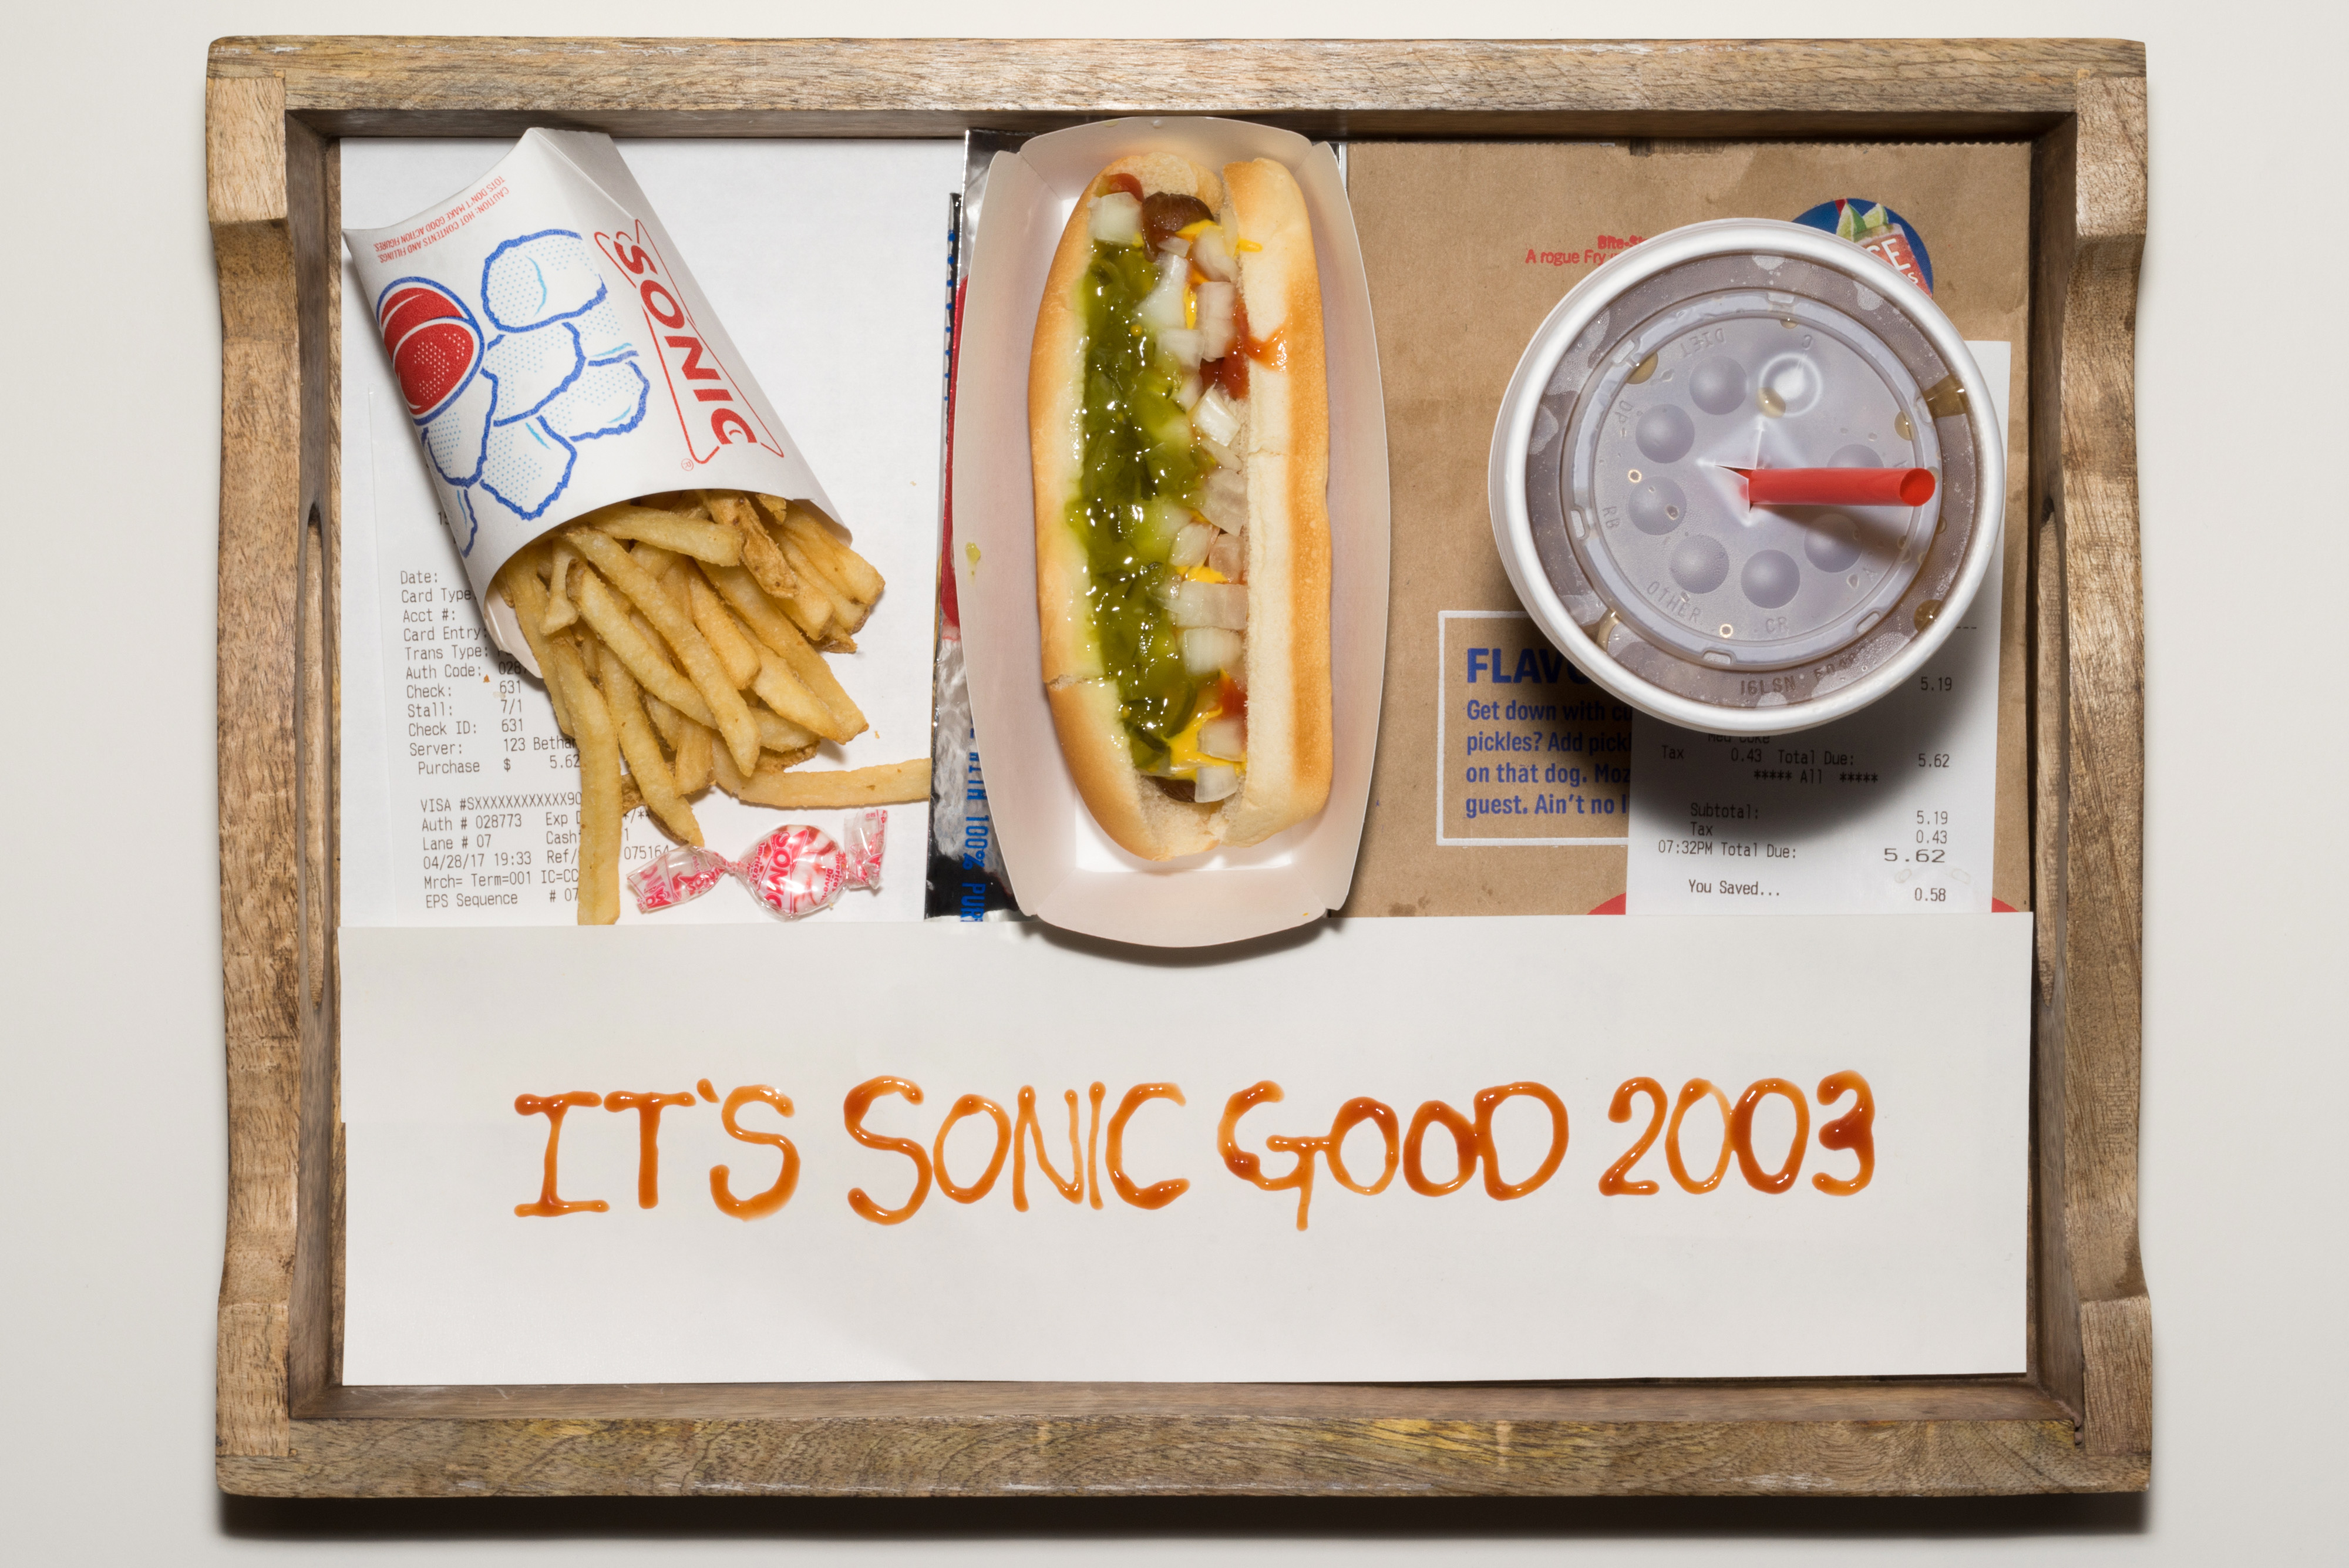 Voice of Fast Food - Sonic